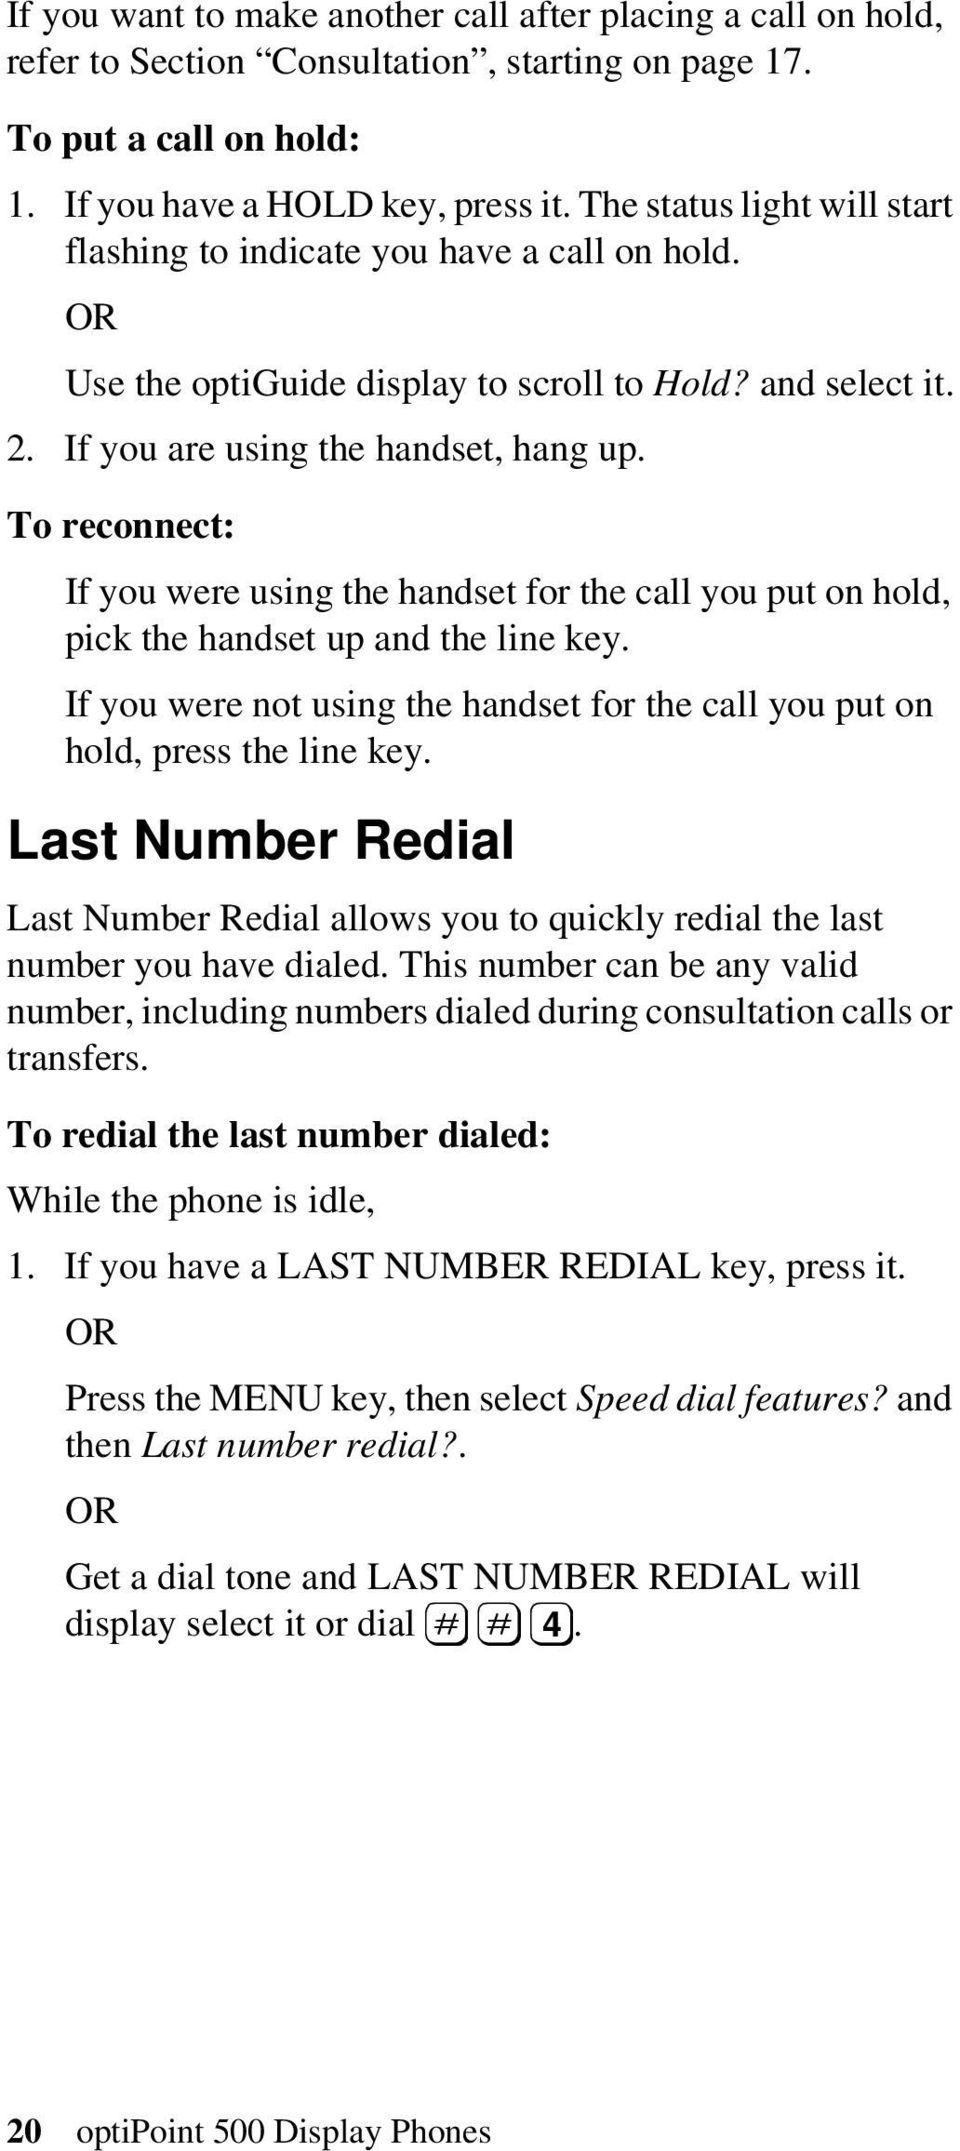 To reconnect: If you were using the handset for the call you put on hold, pick the handset up and the line key. If you were not using the handset for the call you put on hold, press the line key.